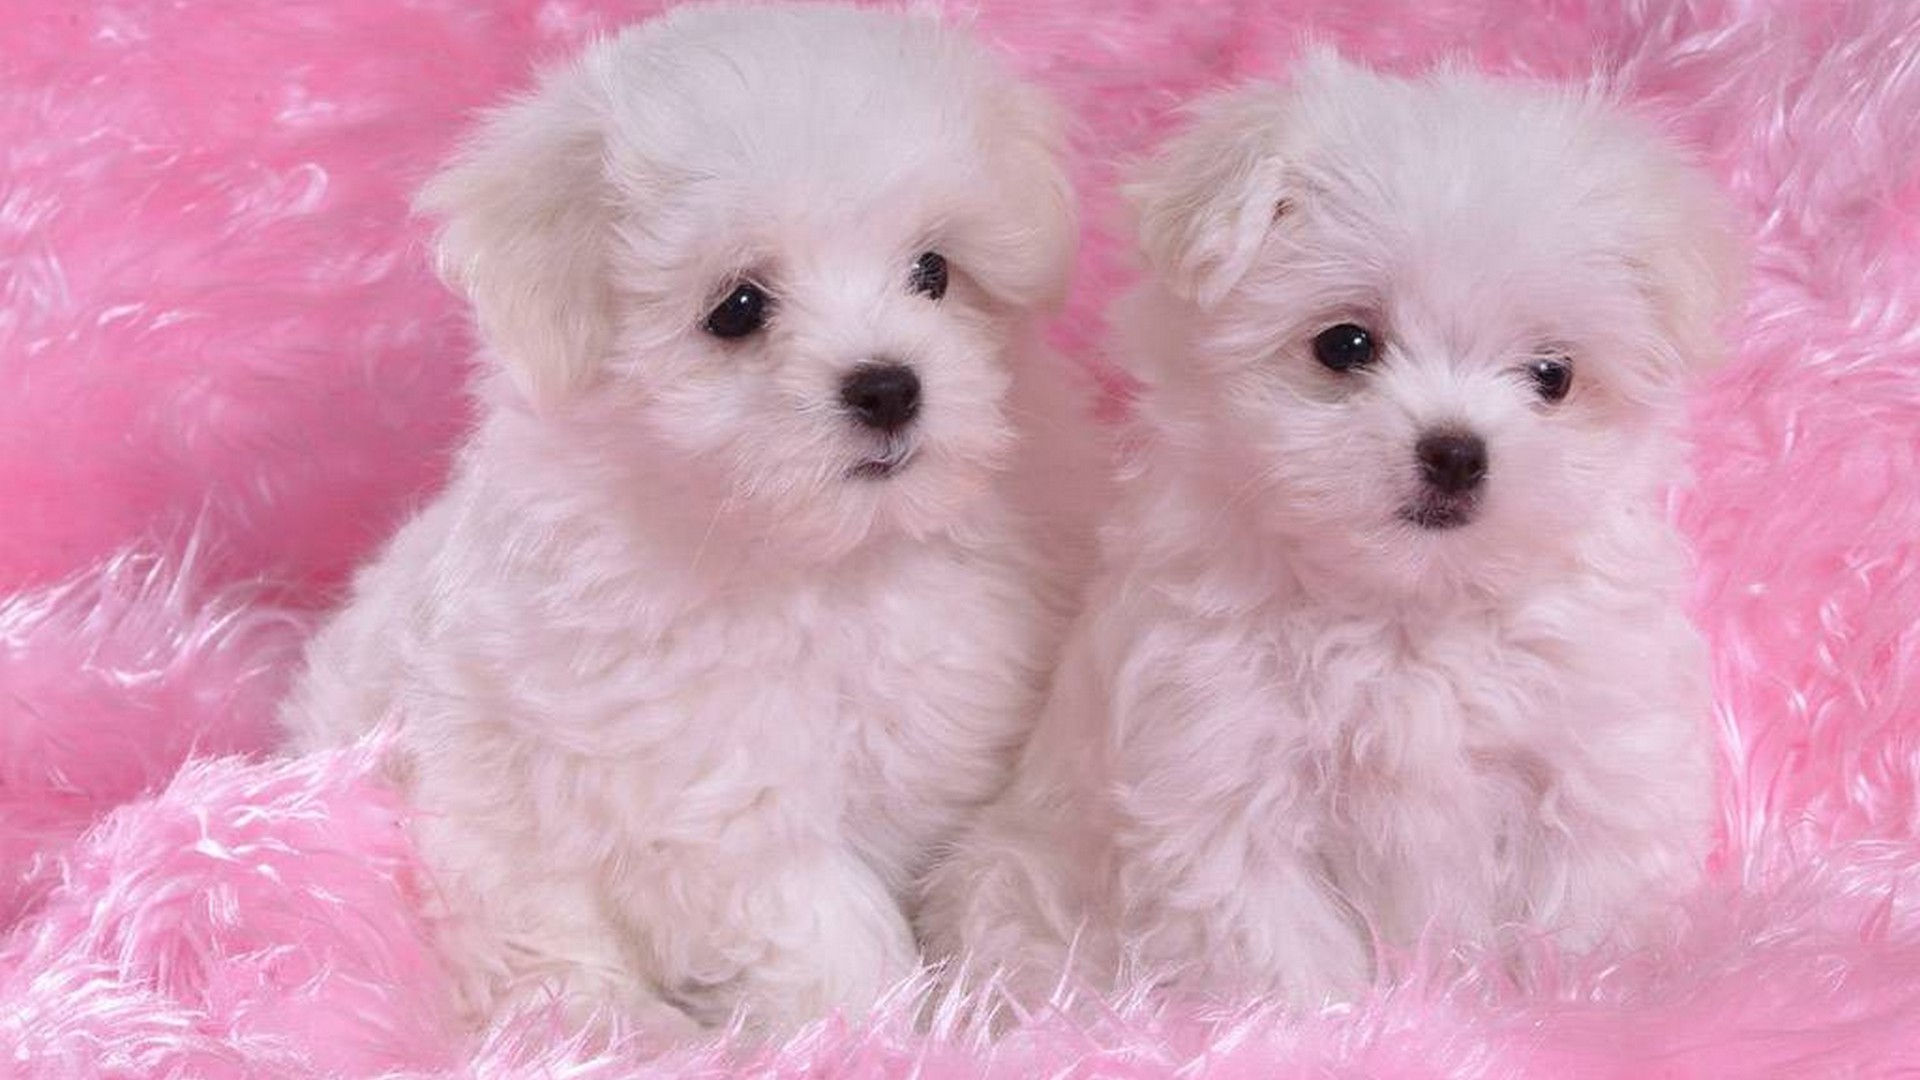 Cute Puppies Desktop Wallpaper 1920x1080